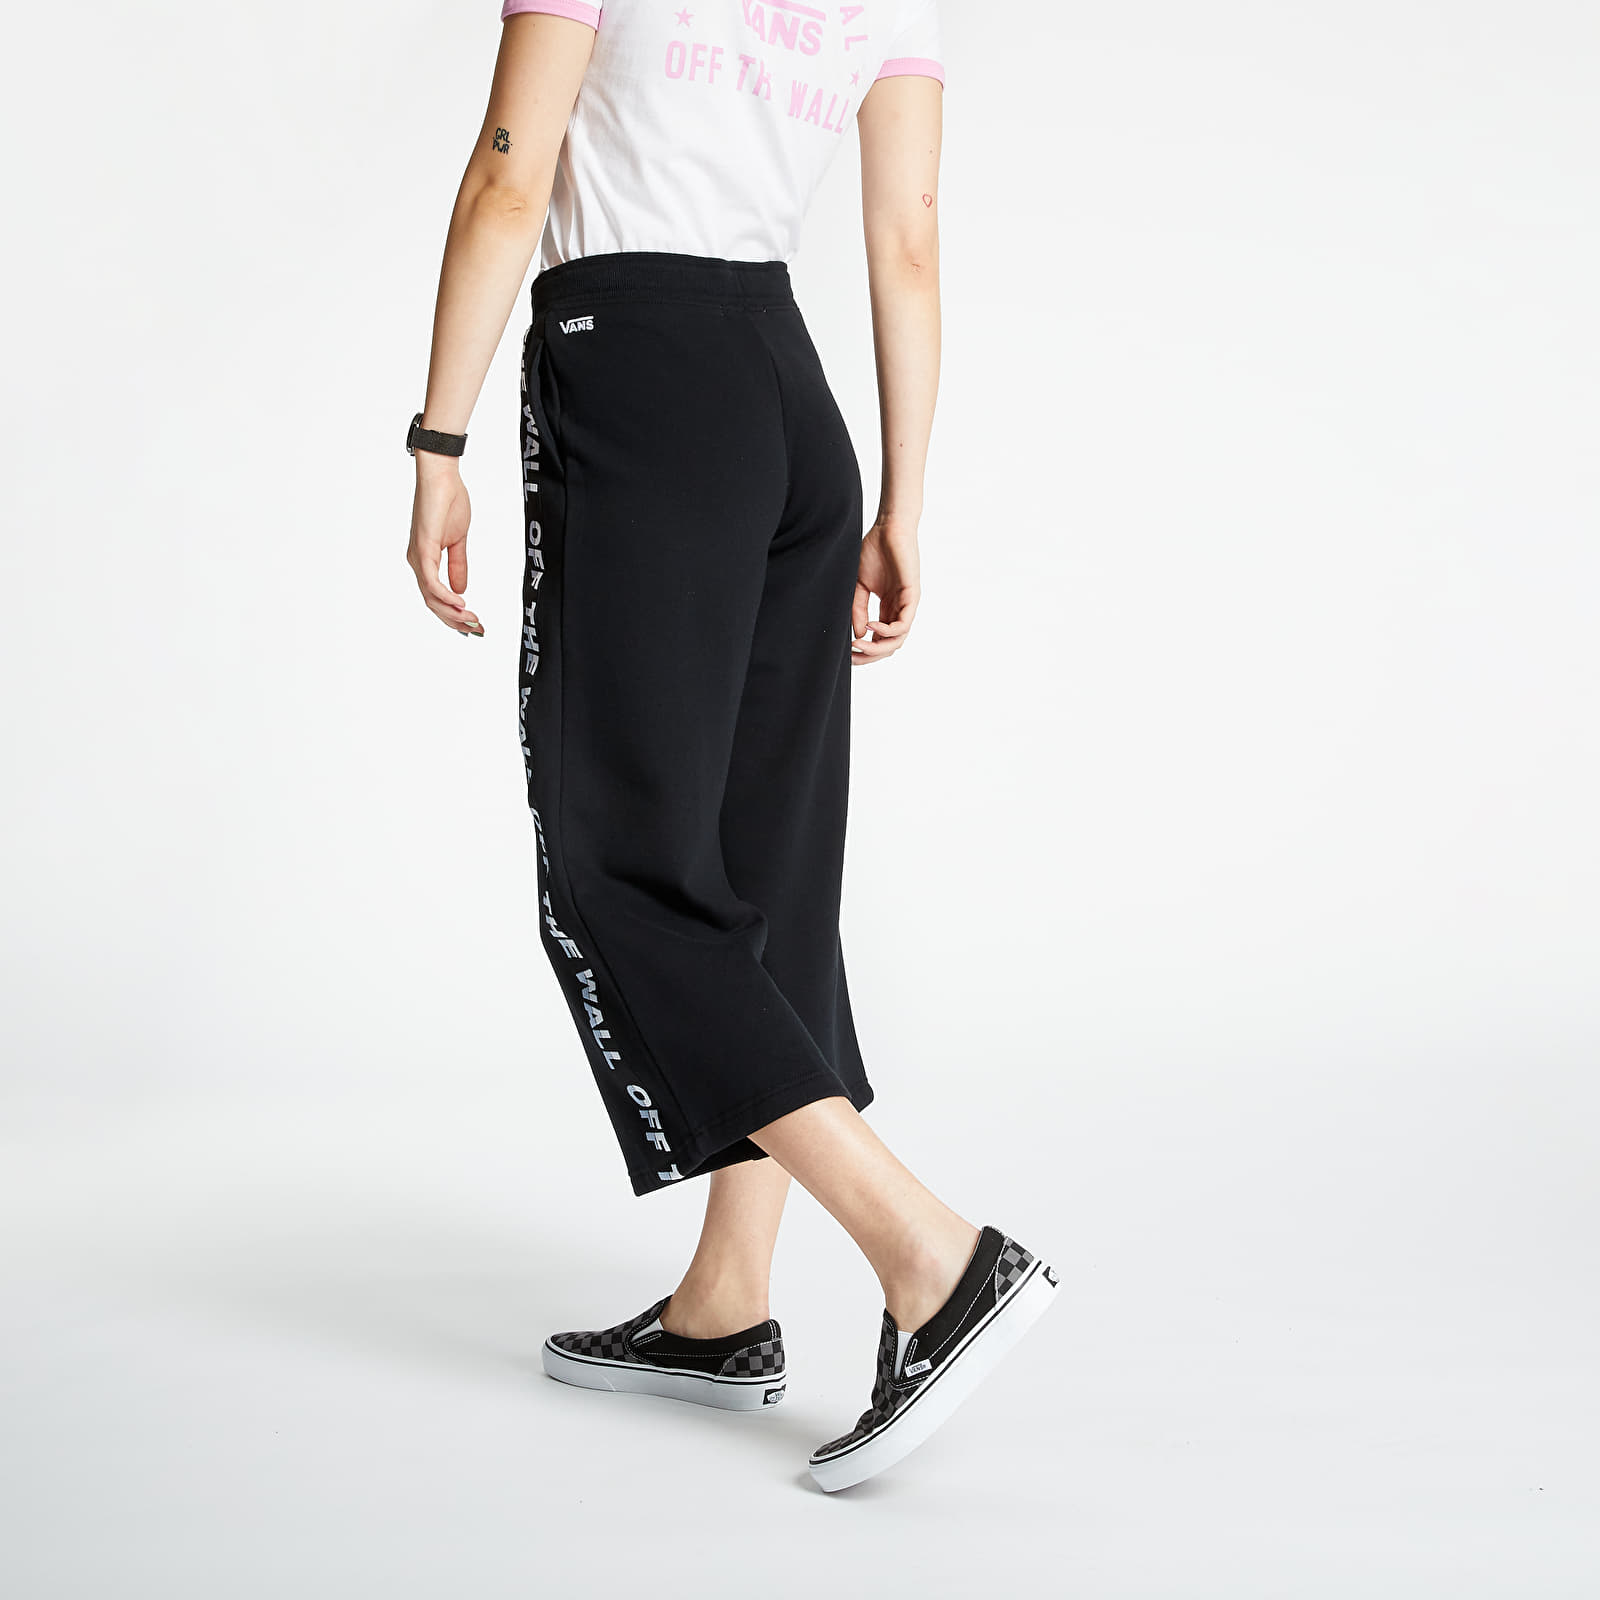 Jogger Pants Vans Chromo Bladez Sweatpants Black